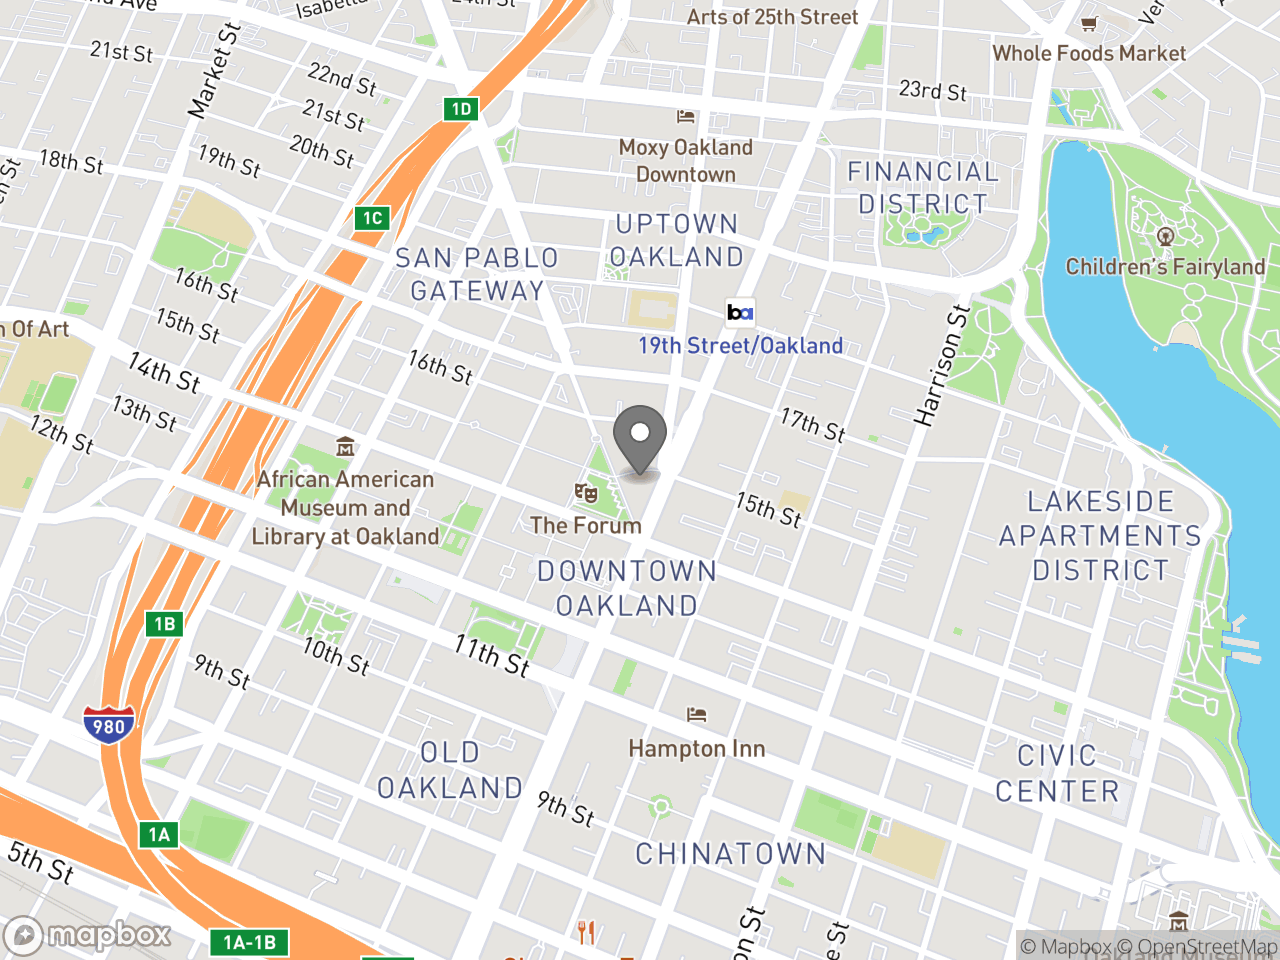 Map location for Finance, located at 150 Frank H Ogawa Plaza in Oakland, CA 94612